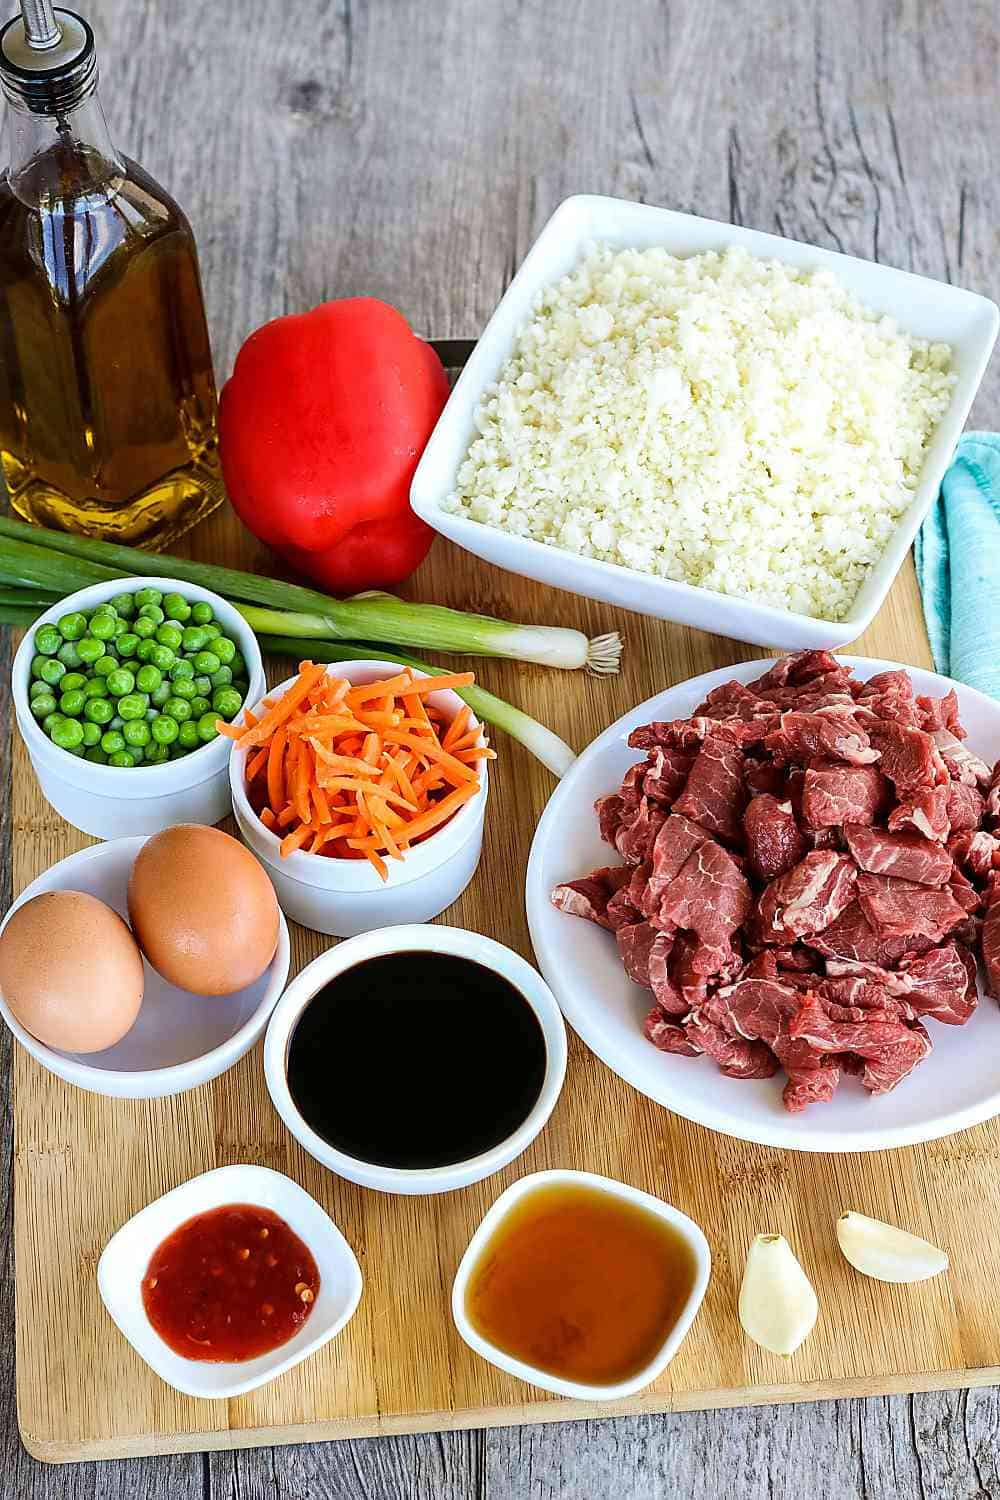 Ingredients for a Cauliflower Rice Beef Stir Fry.